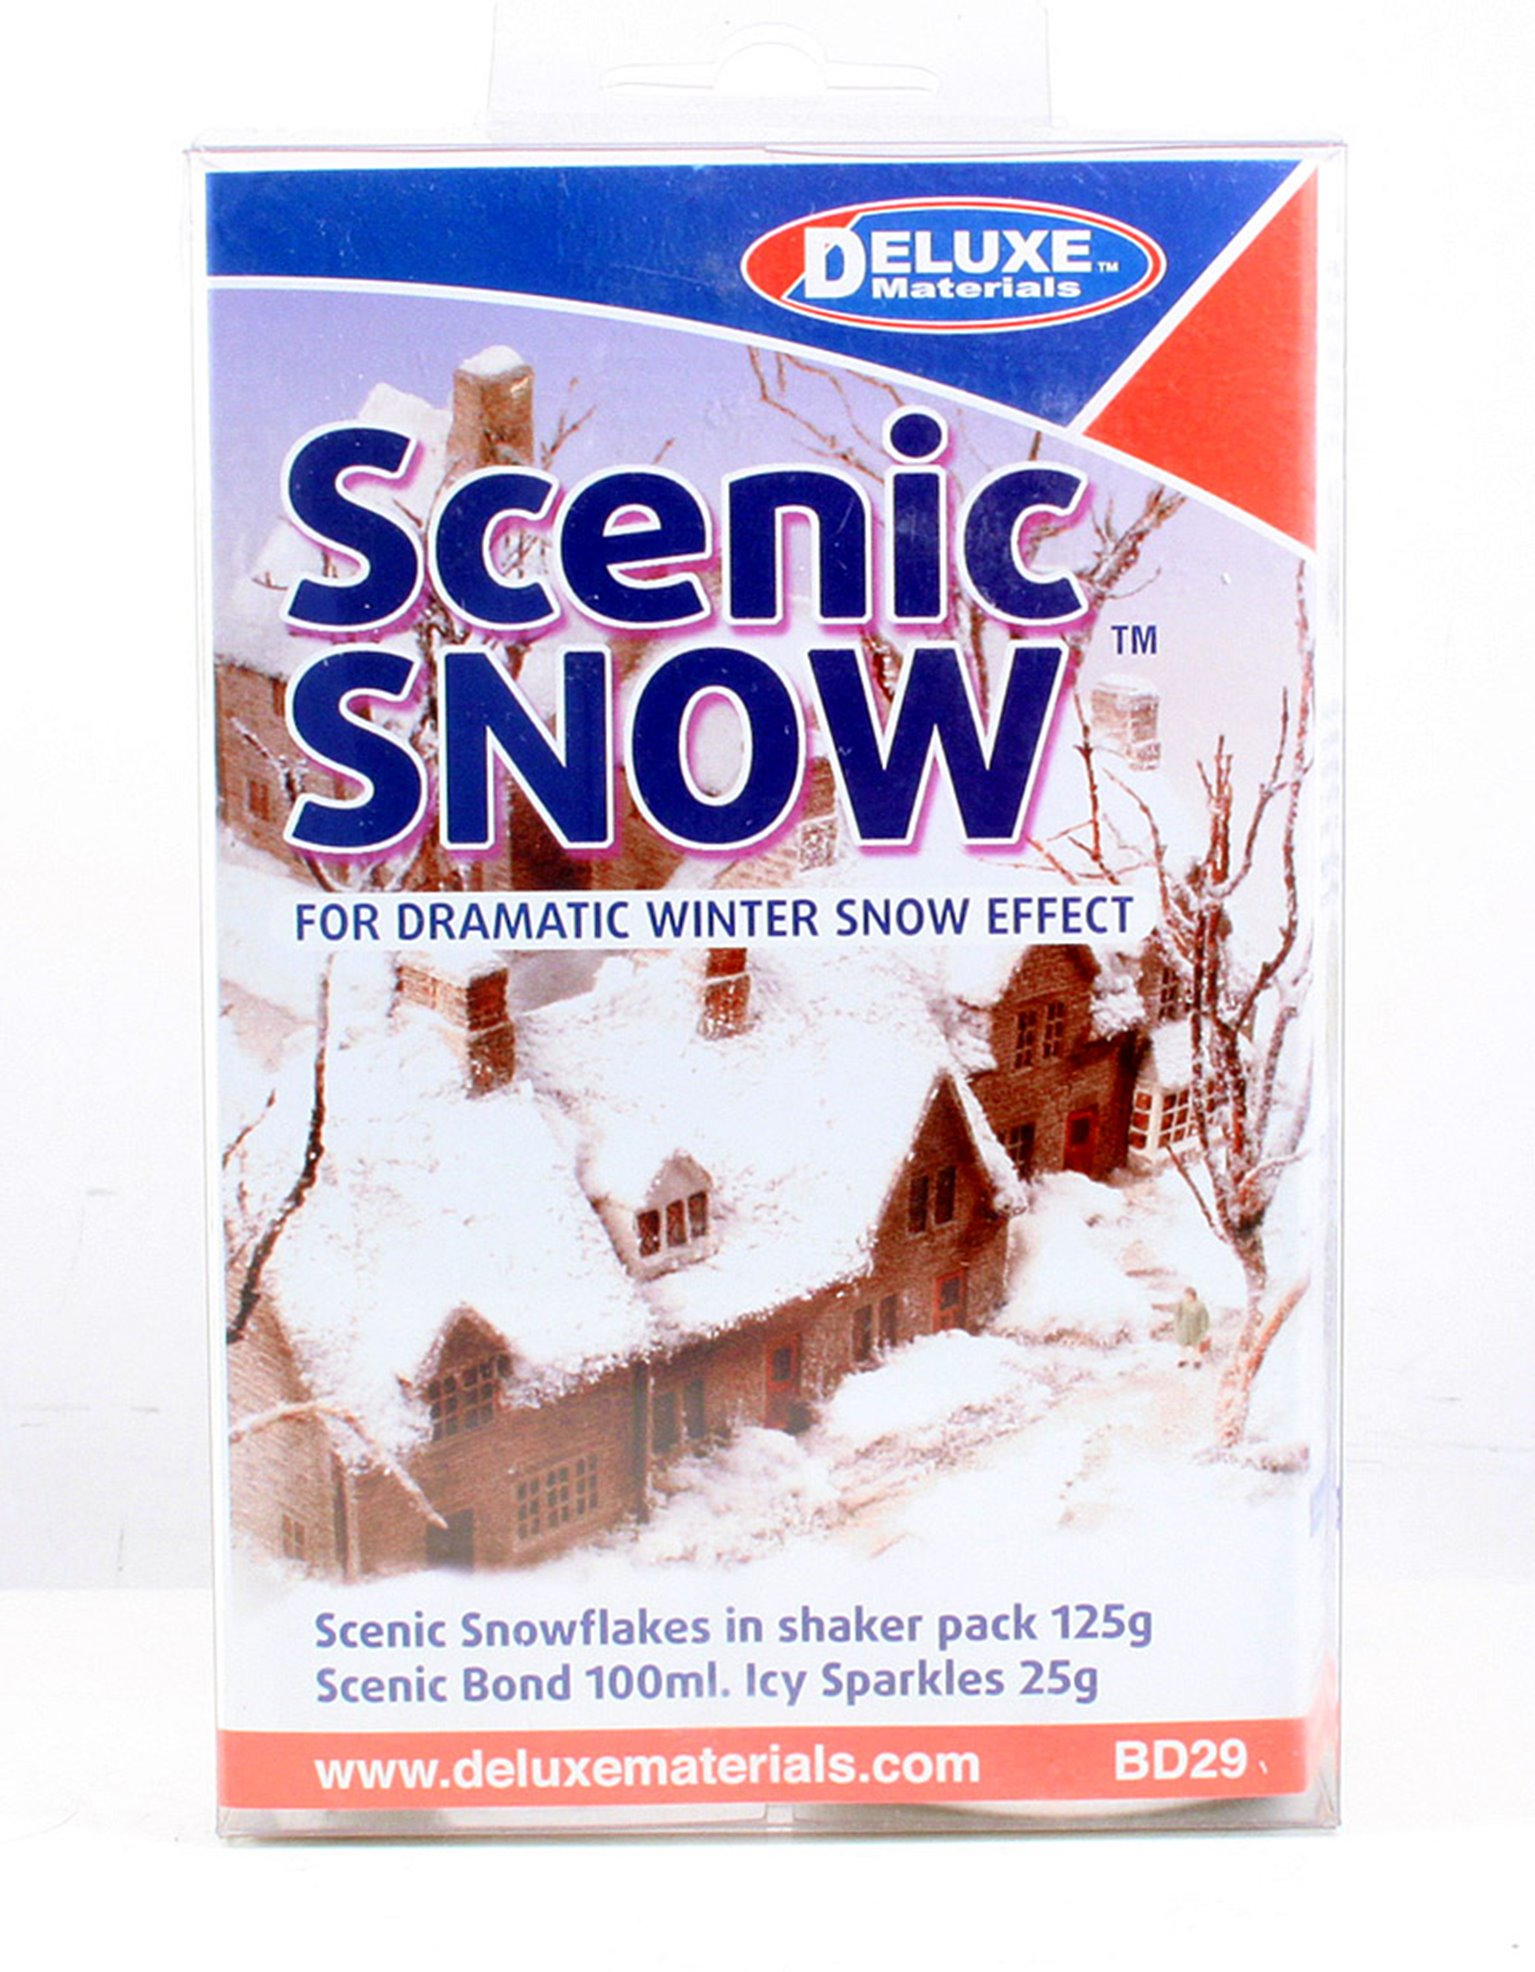 Scenic Snow for winter snow effects